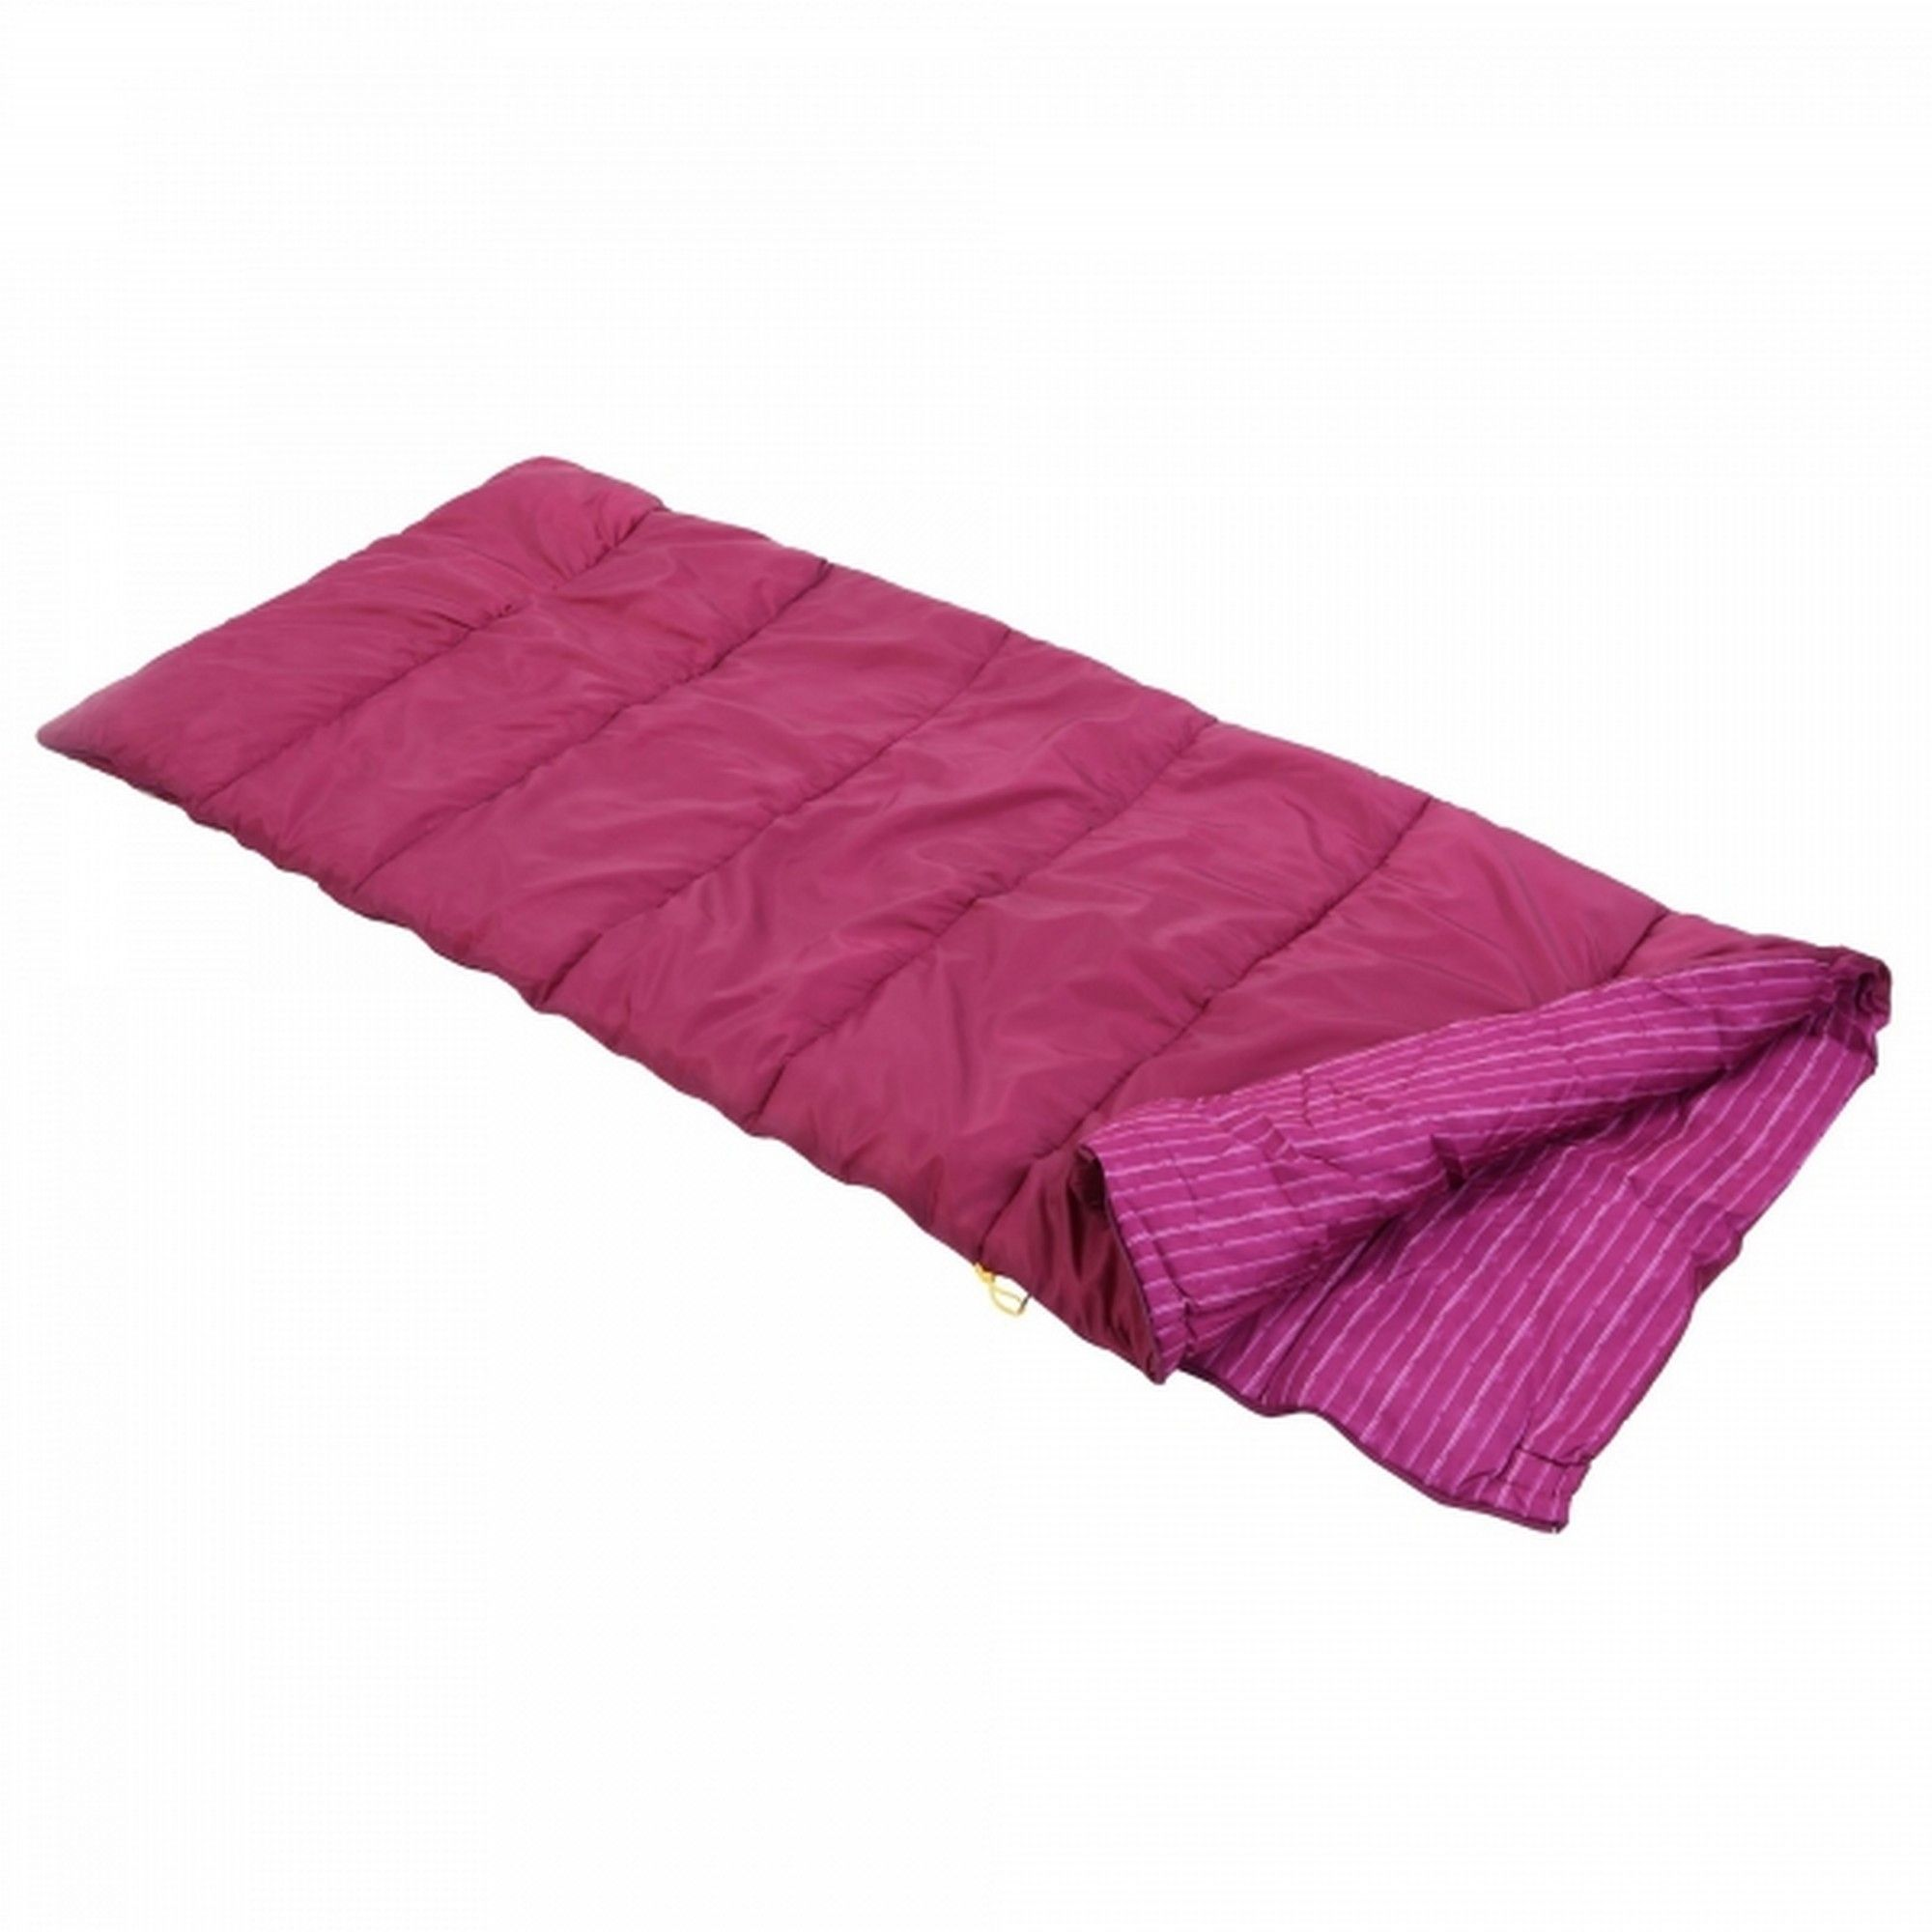 Regatta Great Outdoors Maui Single Sleeping Bag